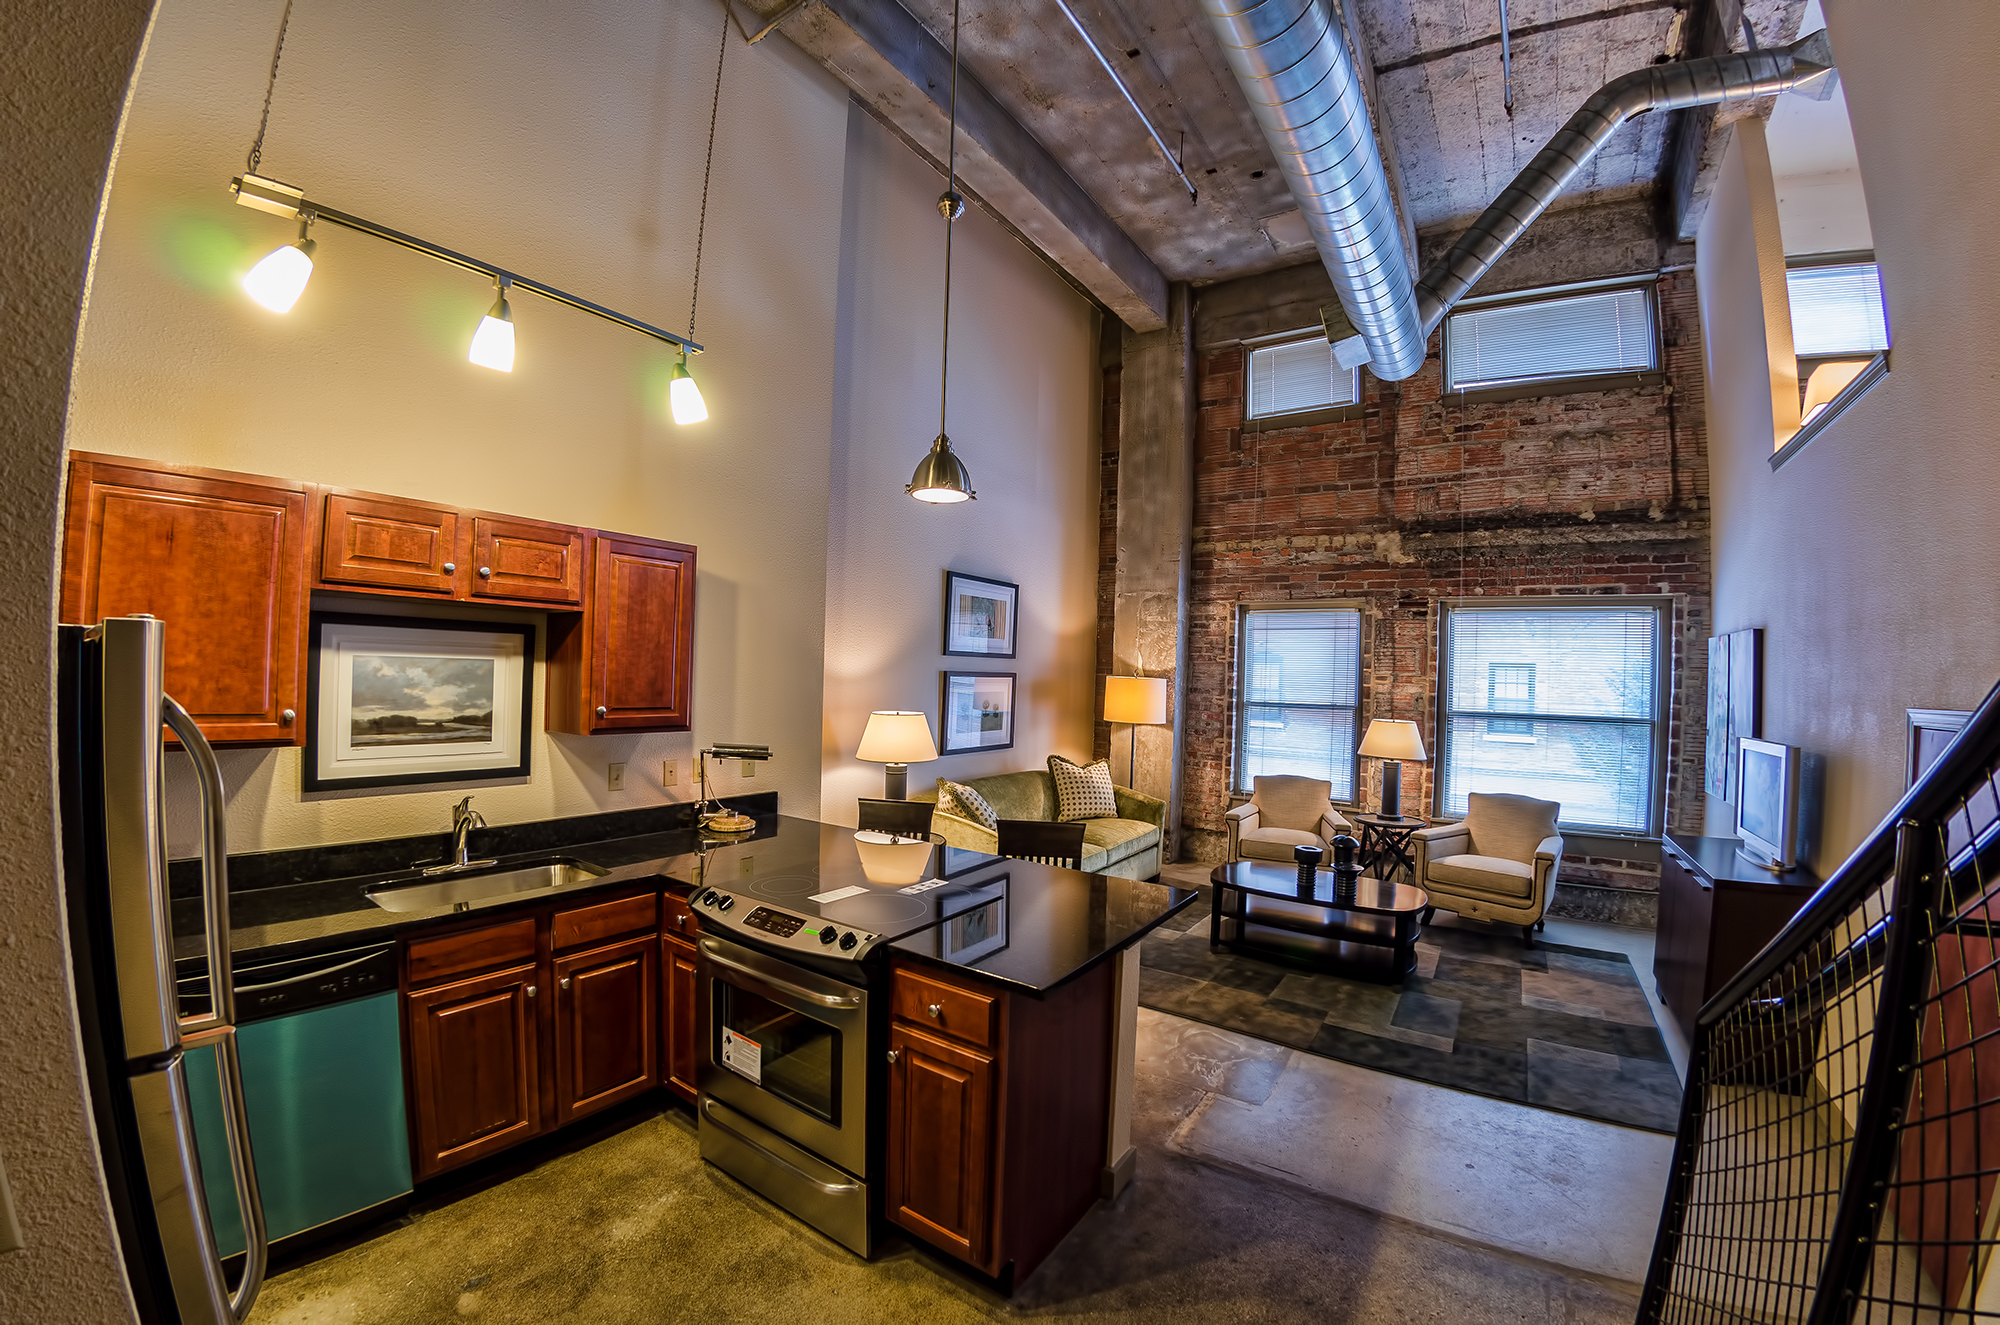 Featured For Sale - Campbell #205 - Kansas City Lofts, Condos and ...